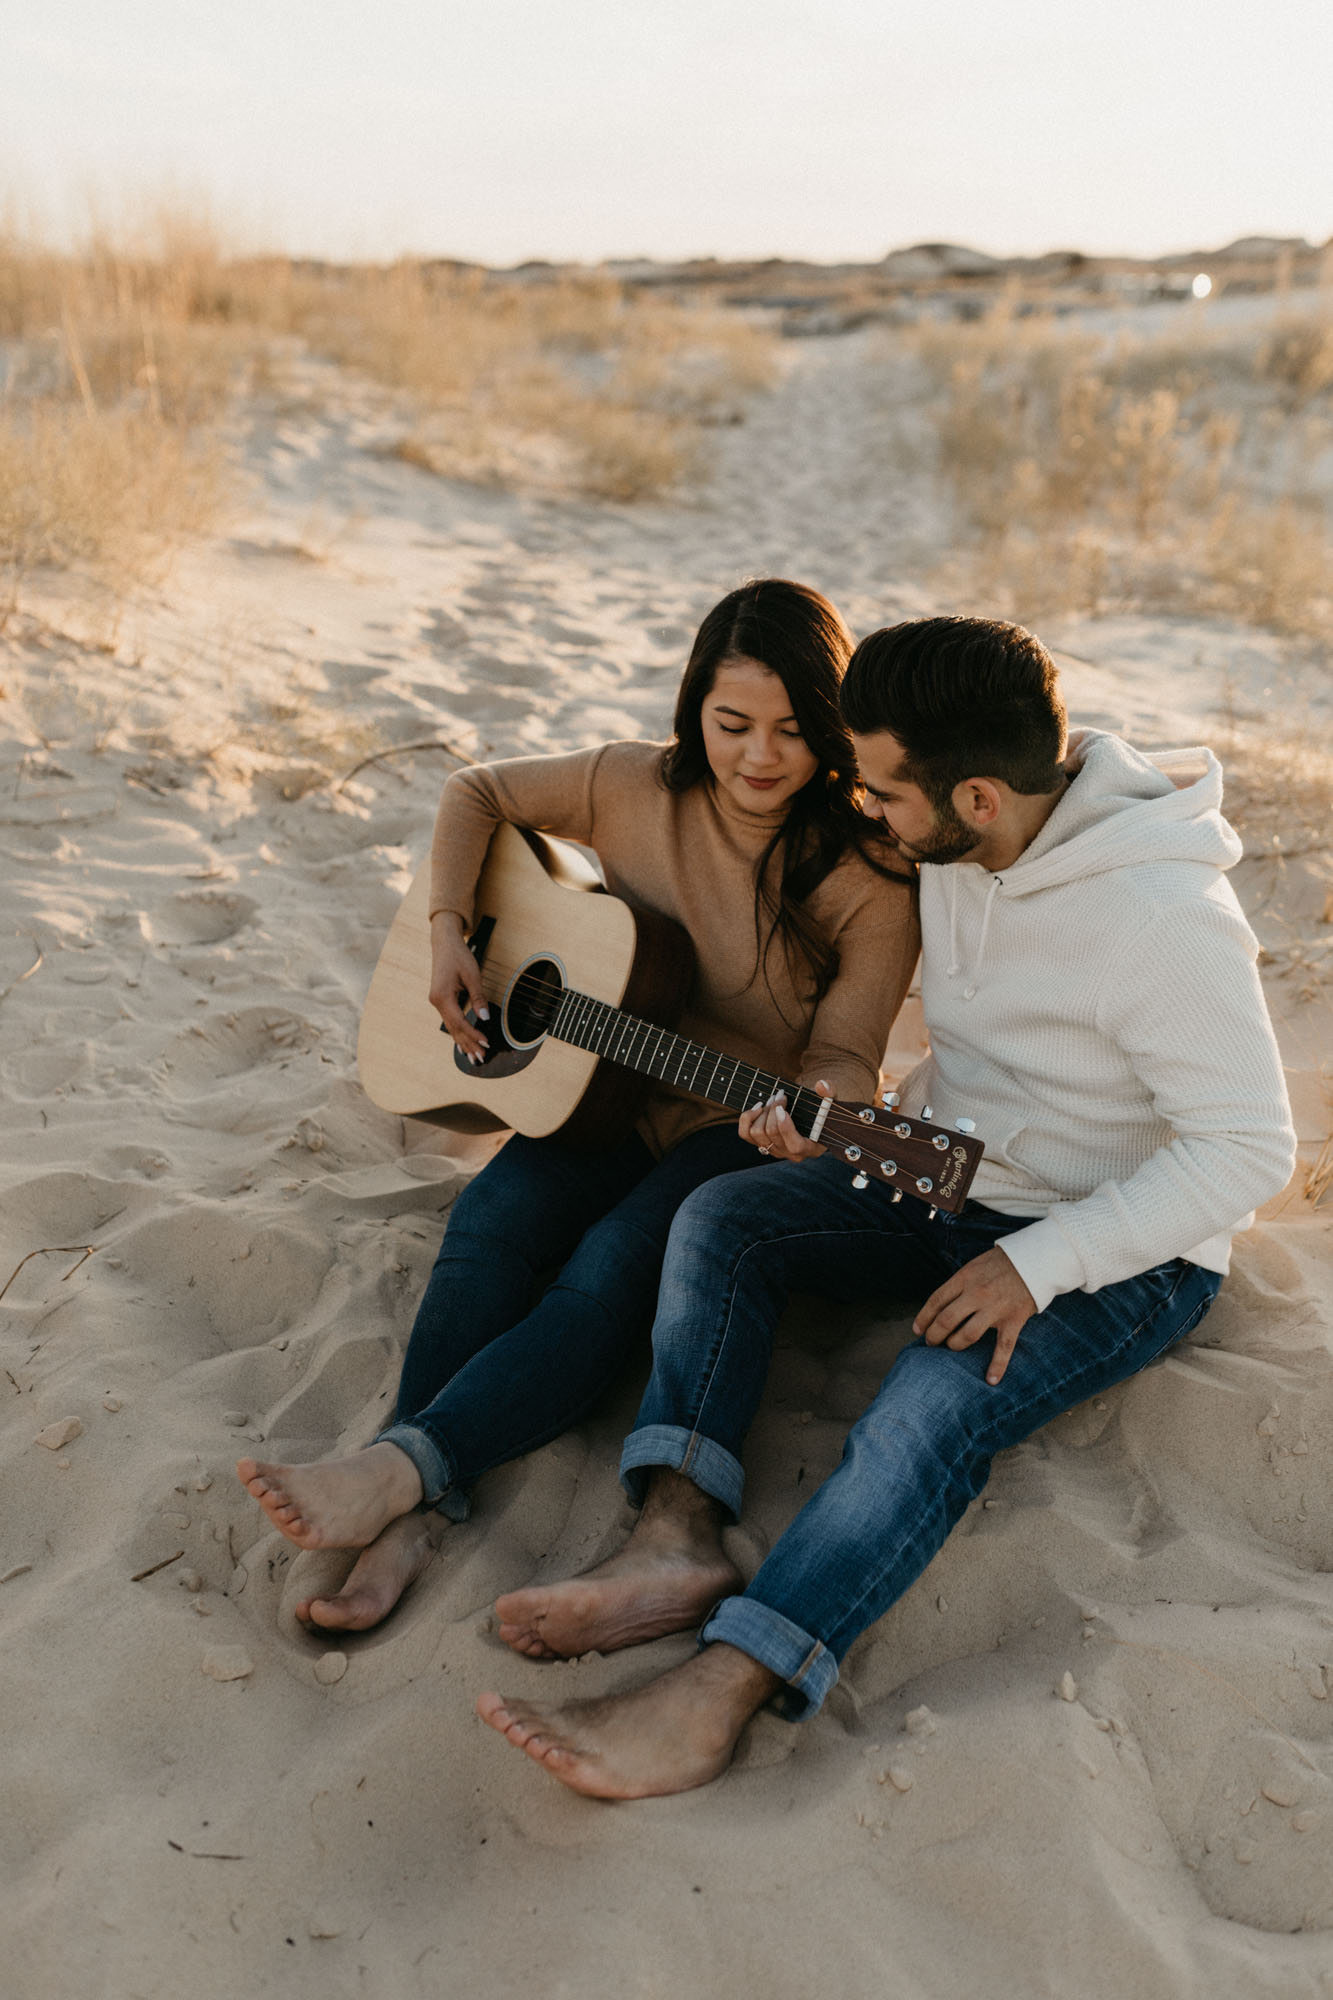 Golden hour couple playing guitar during an engagement session